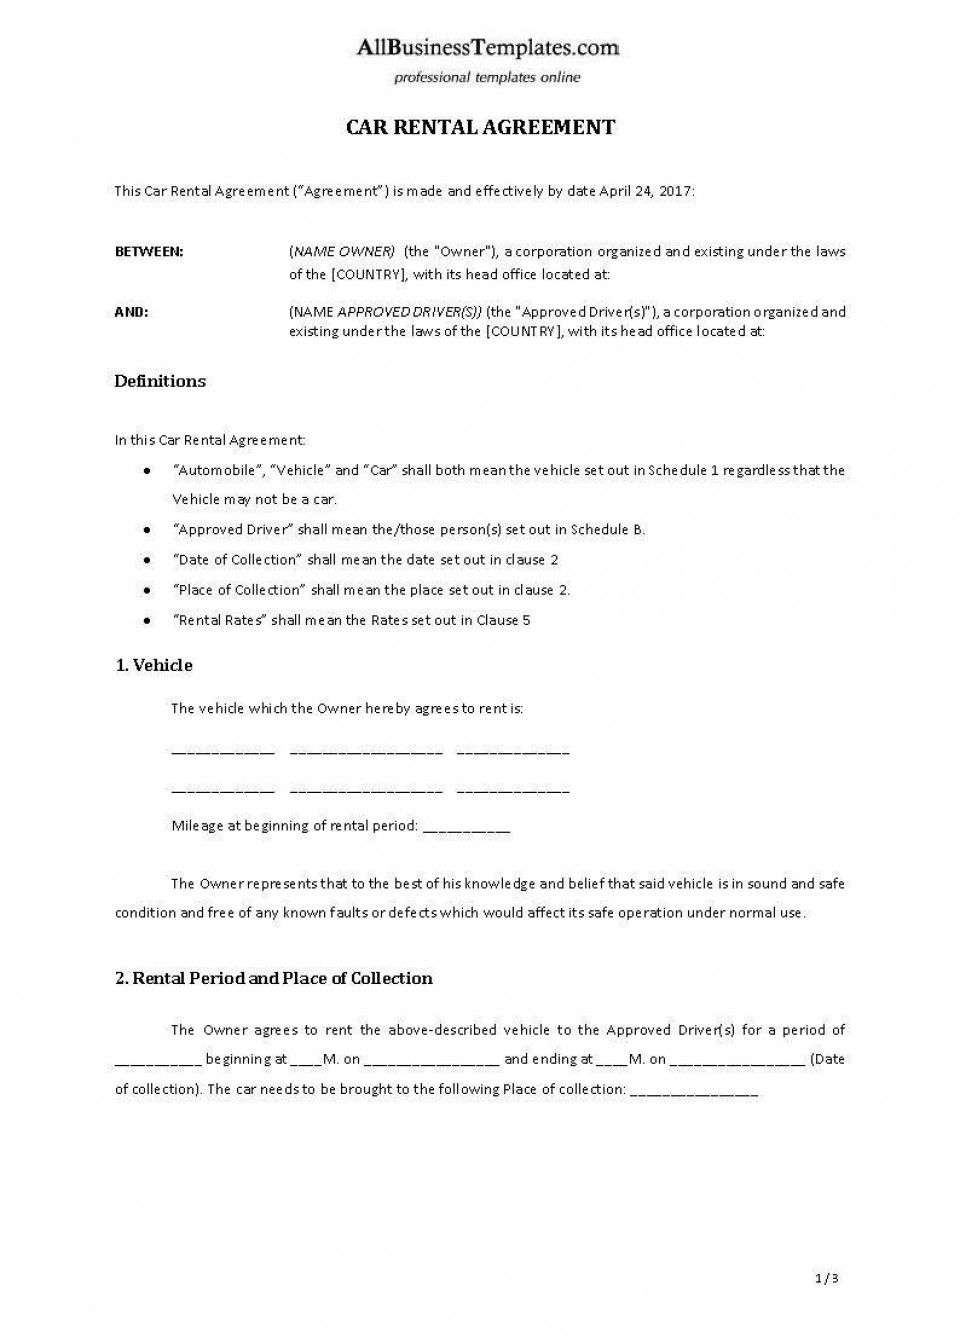 001 Surprising Template Car Rental Form Inspiration  Free Agreement Checklist Inspection960